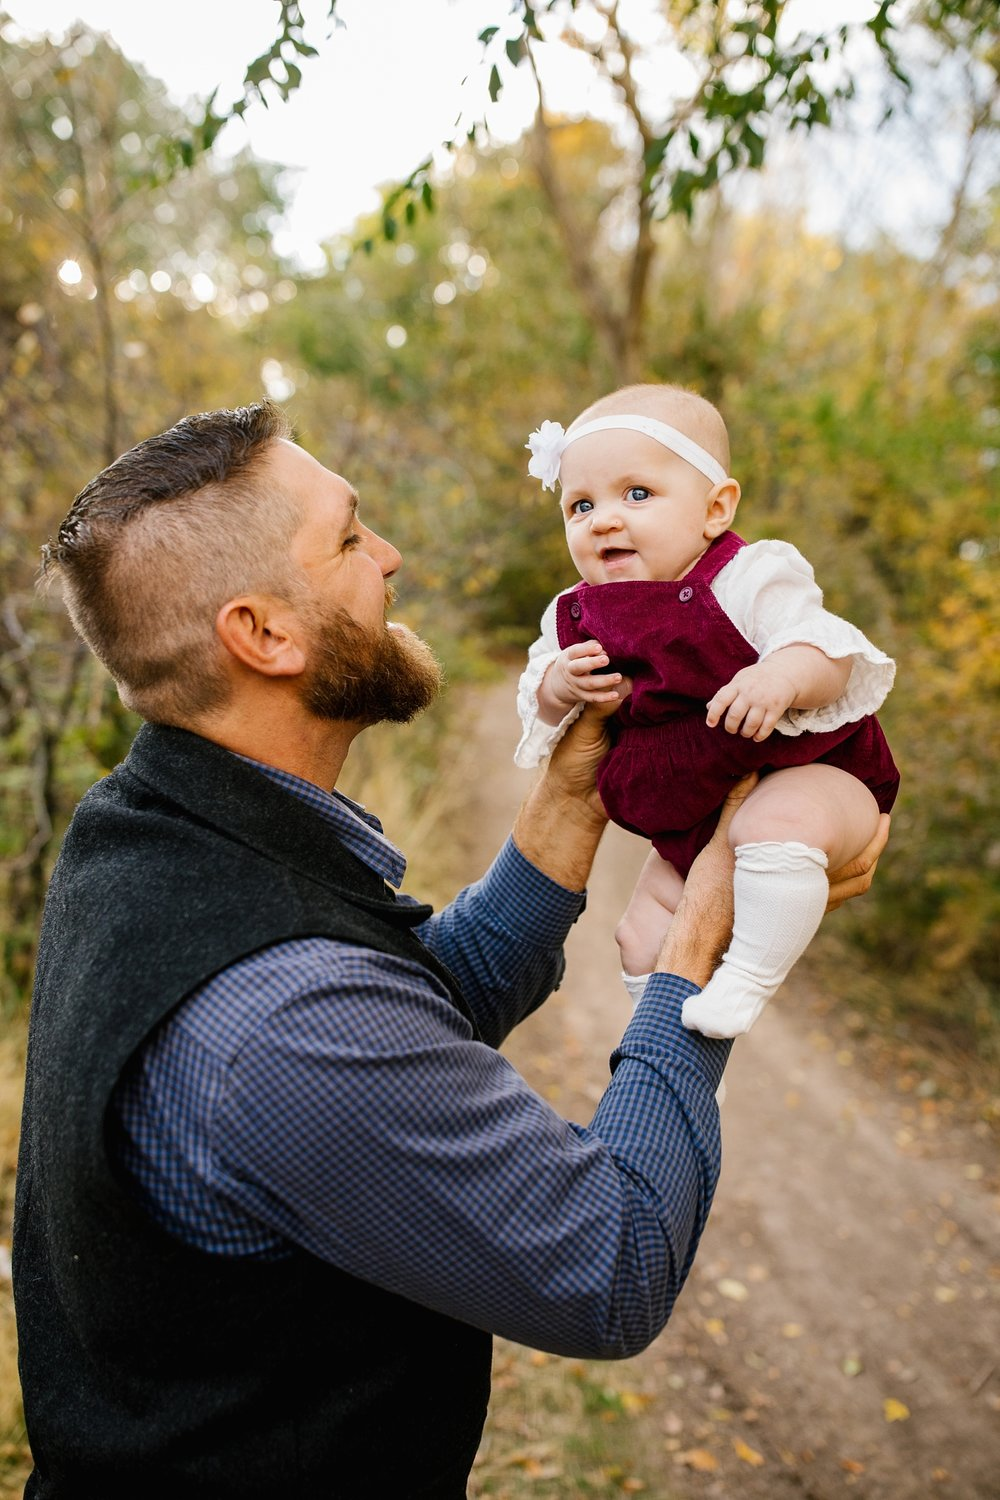 Matthews-66_Lizzie-B-Imagery-Utah-Family-Photographer-Park-City-Salt-Lake-City-Nephi-Utah.jpg